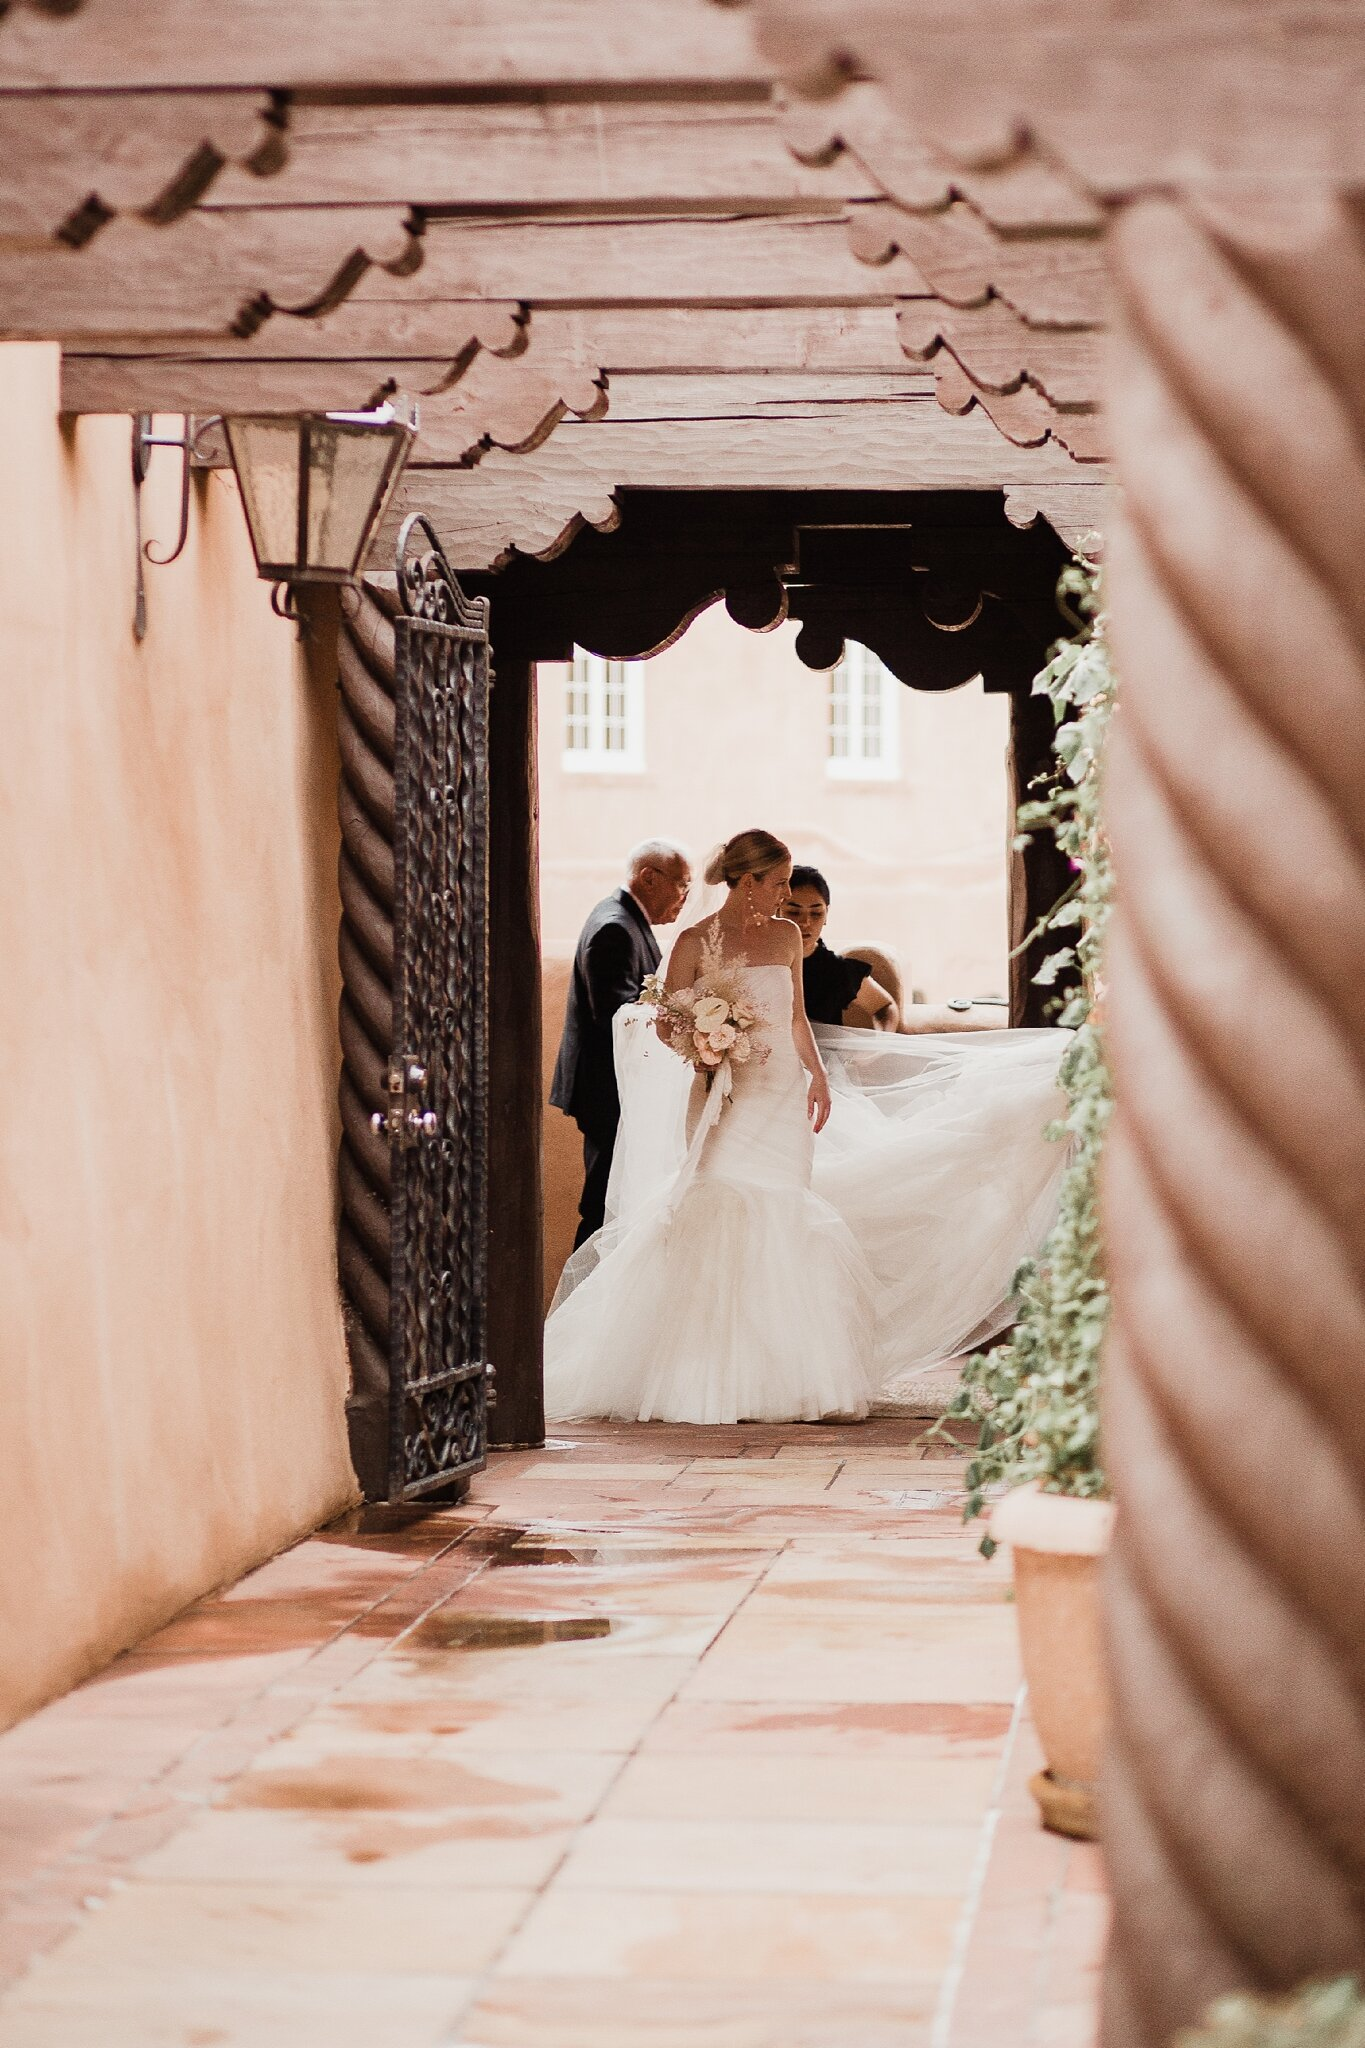 Alicia+lucia+photography+-+albuquerque+wedding+photographer+-+santa+fe+wedding+photography+-+new+mexico+wedding+photographer+-+new+mexico+wedding+-+la+fonda+wedding+-+la+fonda+on+the+plaza+-+santa+fe+wedding+-+brooklyn+bride_0044.jpg